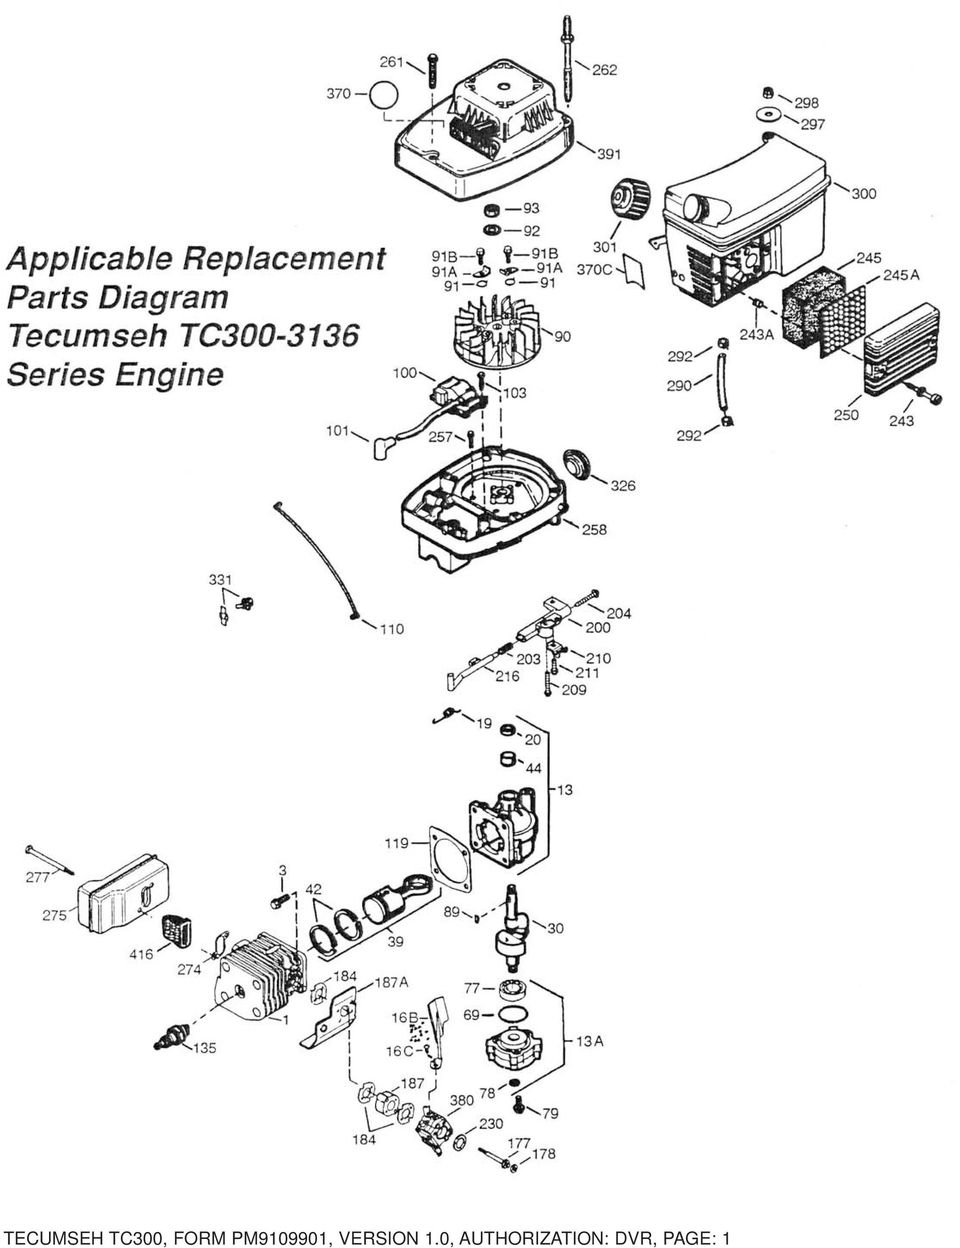 Parts Manual Tecumseh Tc Cycle Engine Breakdown For Use With Carburetor Diagram Related Images 3 Reference A 6b 6c 9b 9 6 Applicable Replacement Series General Hole Digger Part B 5768a 57698a